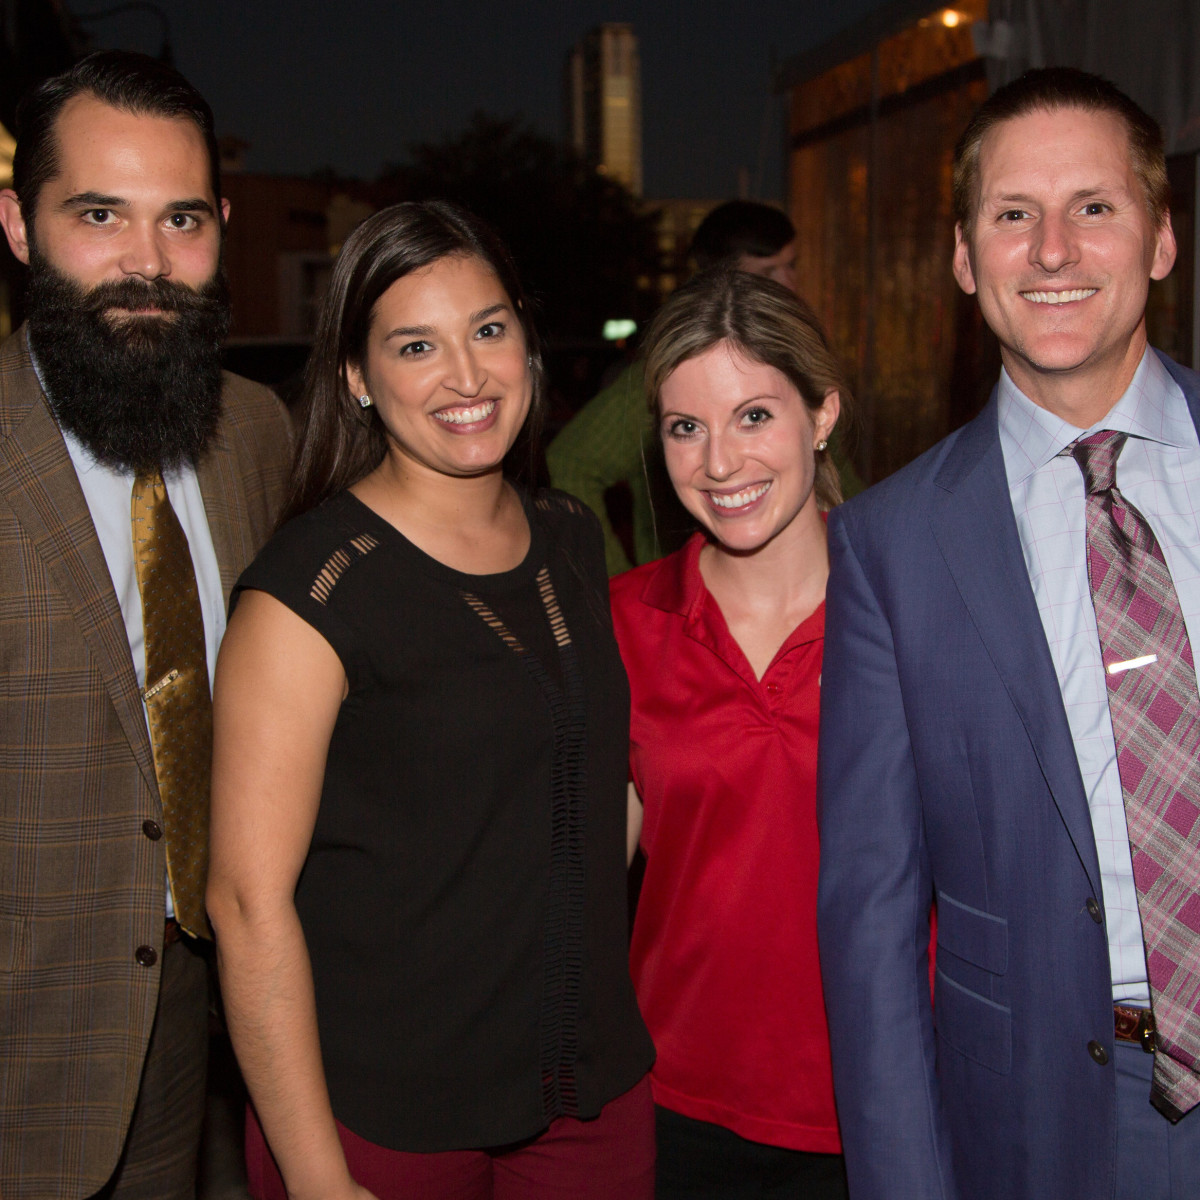 Houston, Mica Mosbacher Racing Forward event, October 2015, Lance Holder, Rachel Castillo, Kara Denney, Christian Boehm